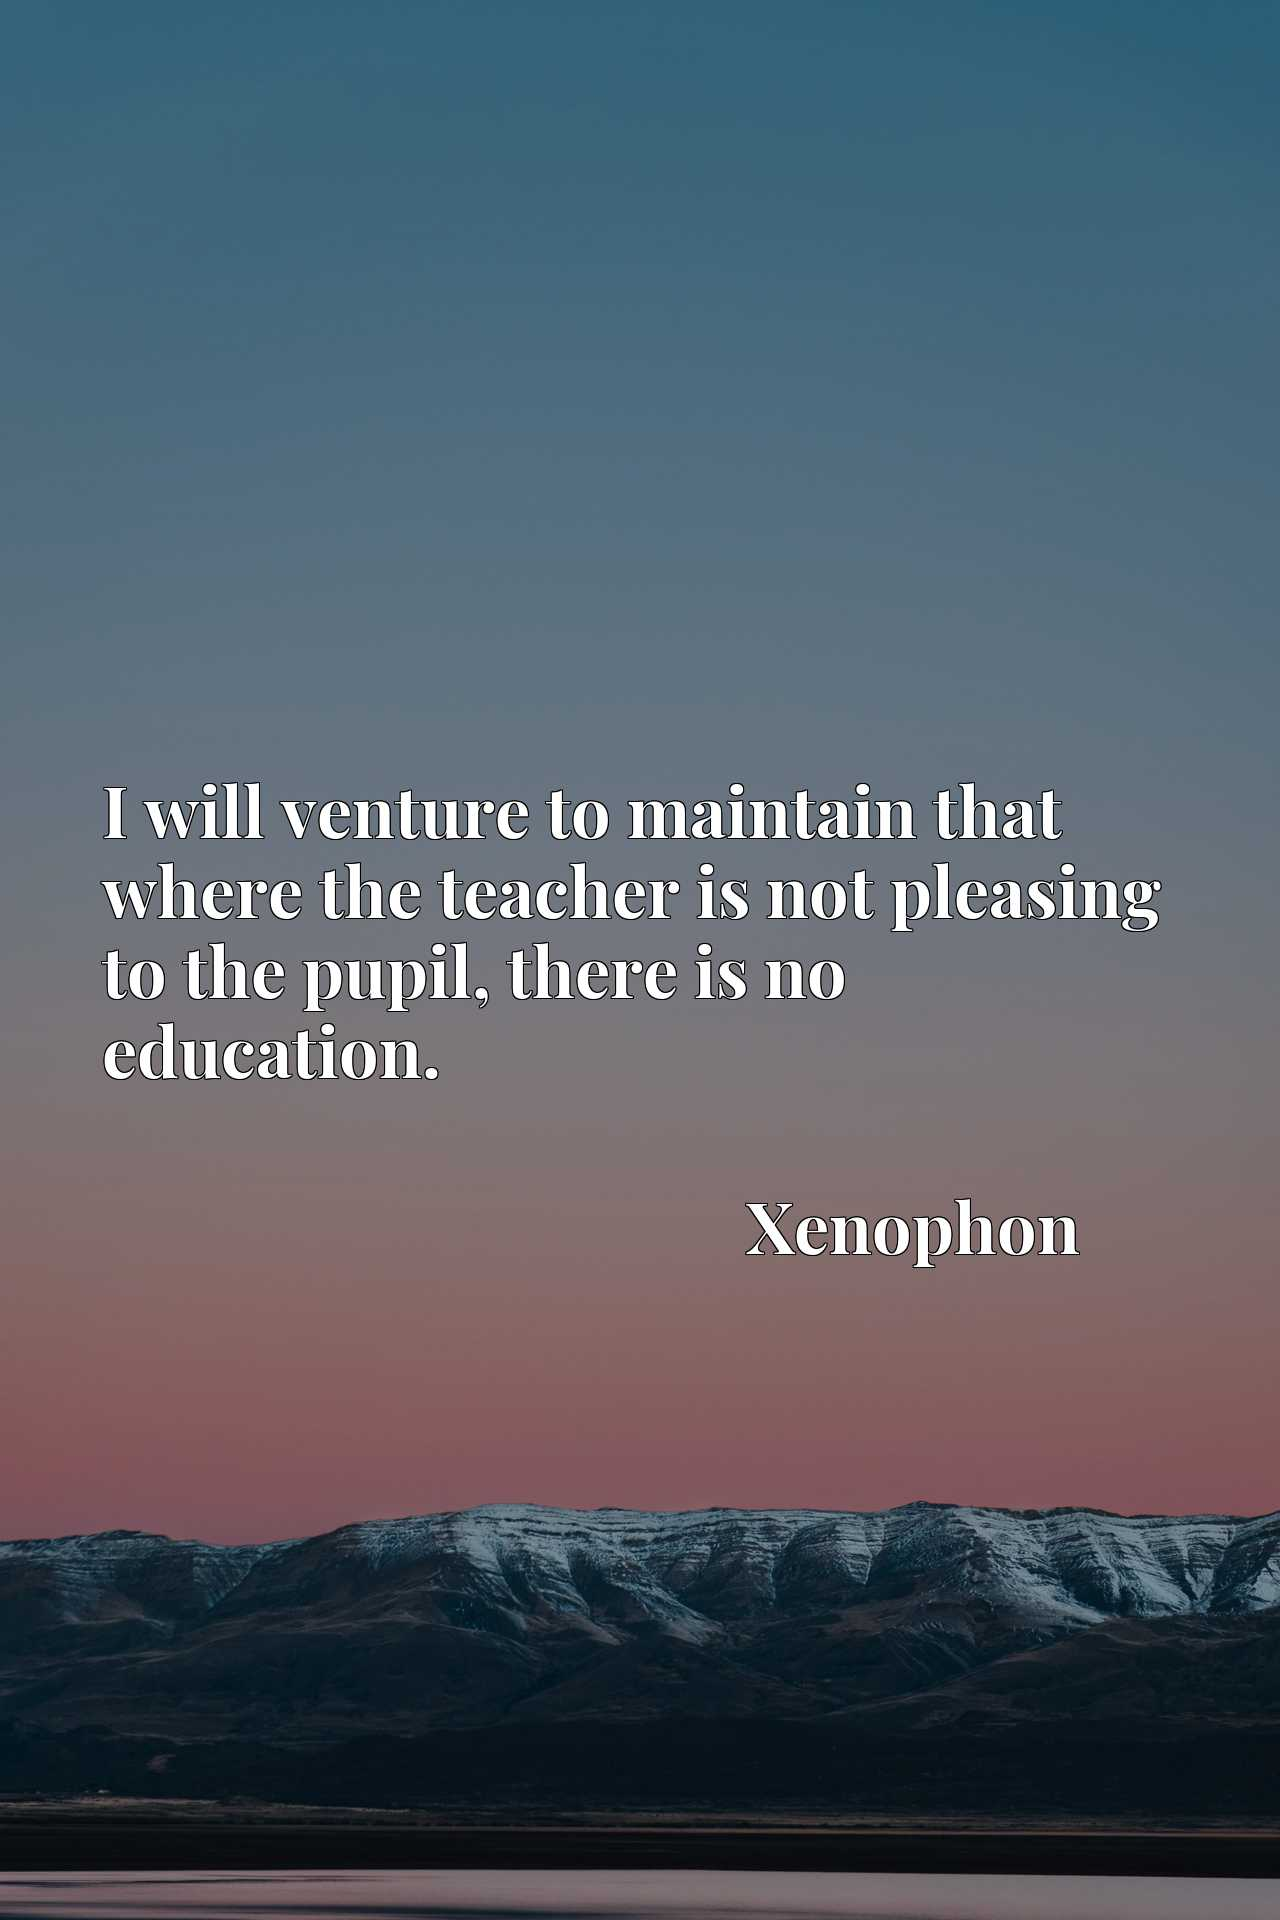 I will venture to maintain that where the teacher is not pleasing to the pupil, there is no education.